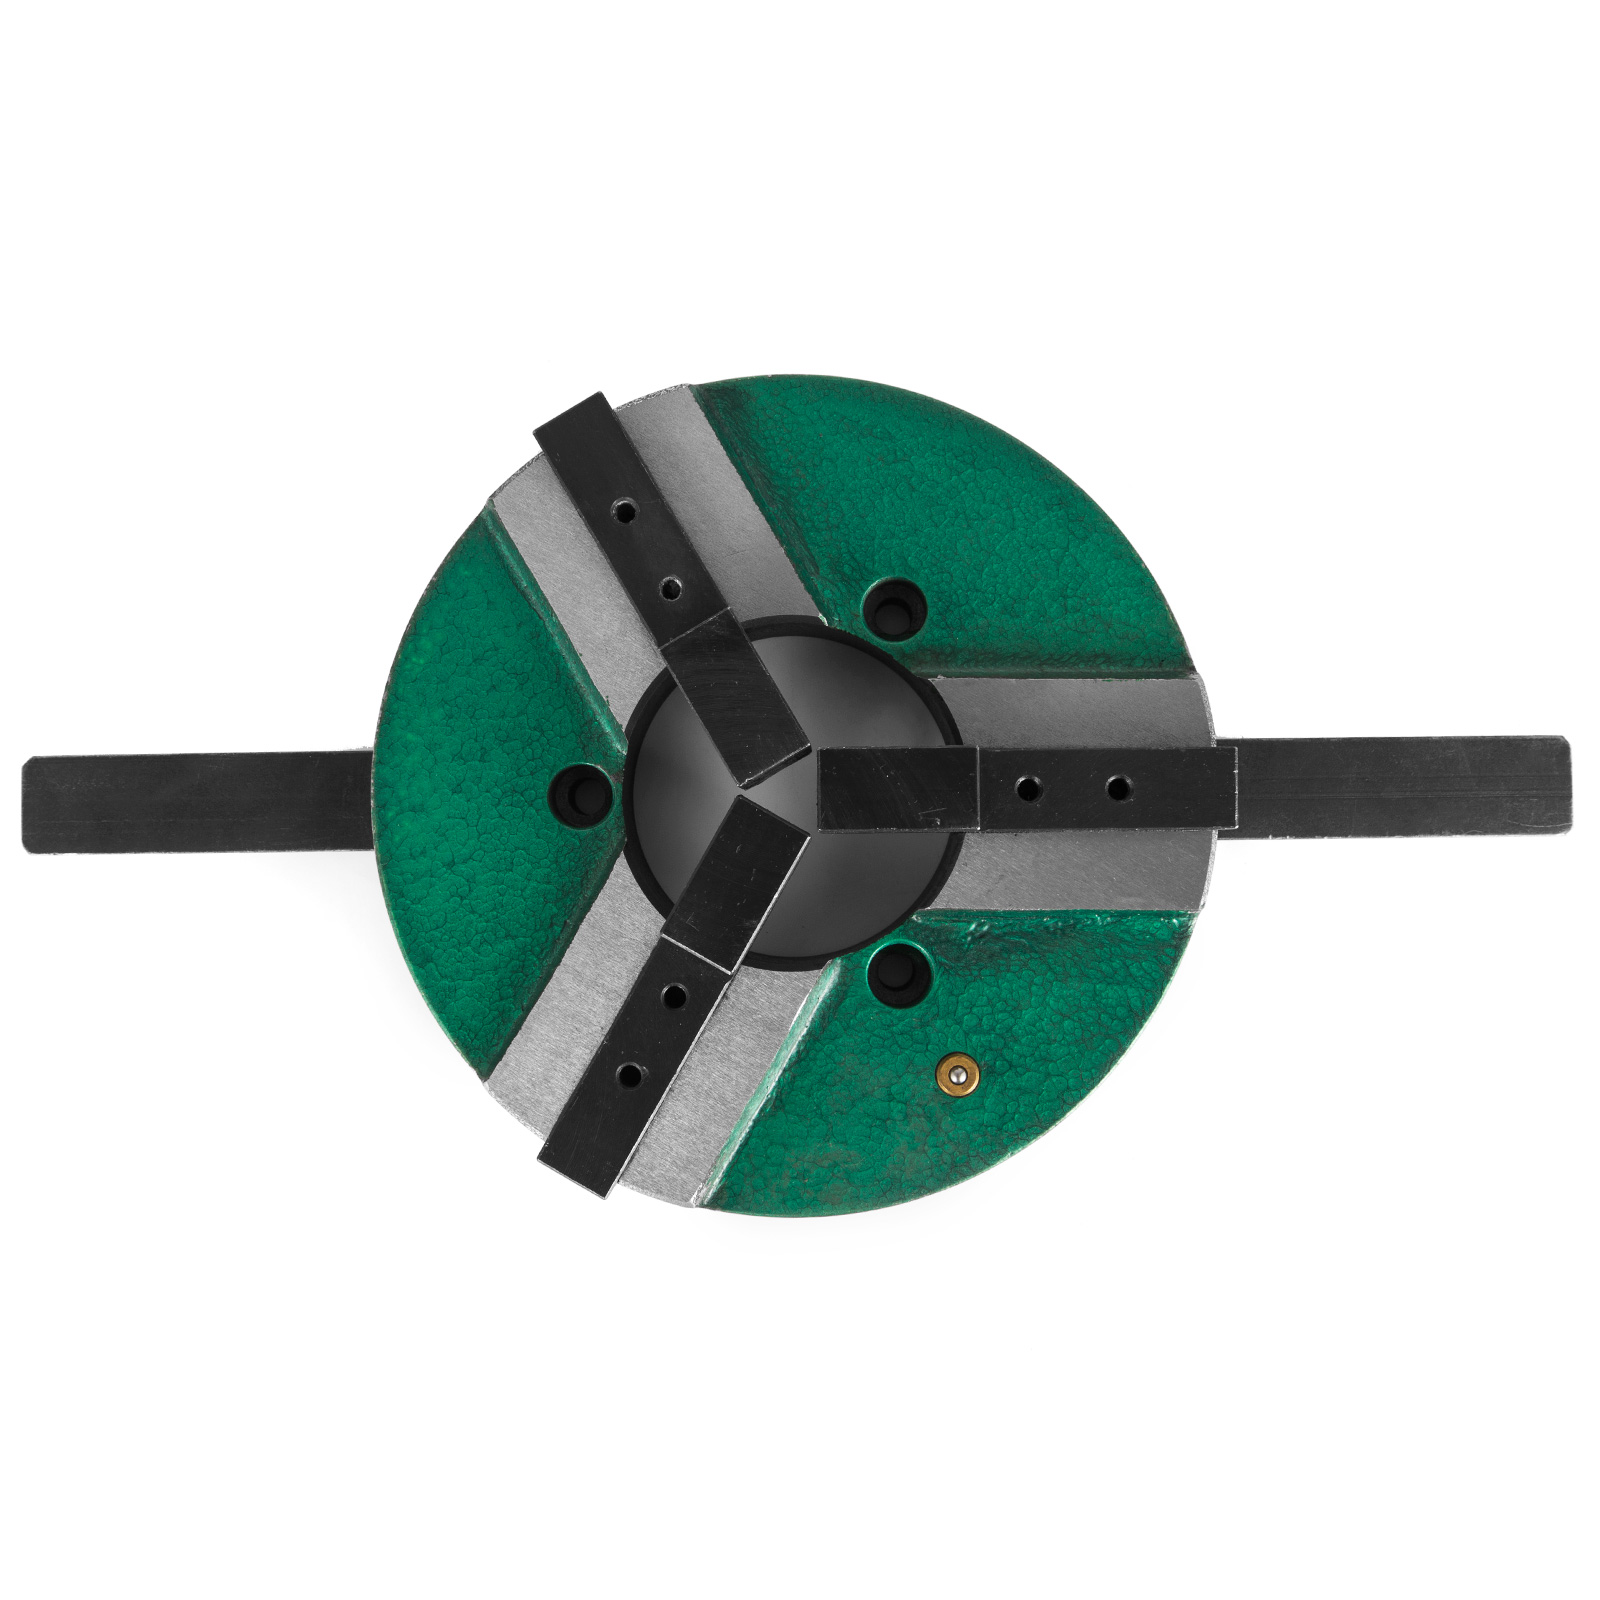 3-Jaw-Table-Chuck-Reversible-WP-200-WP-300-Clamping-Self-Centering-Welding thumbnail 18